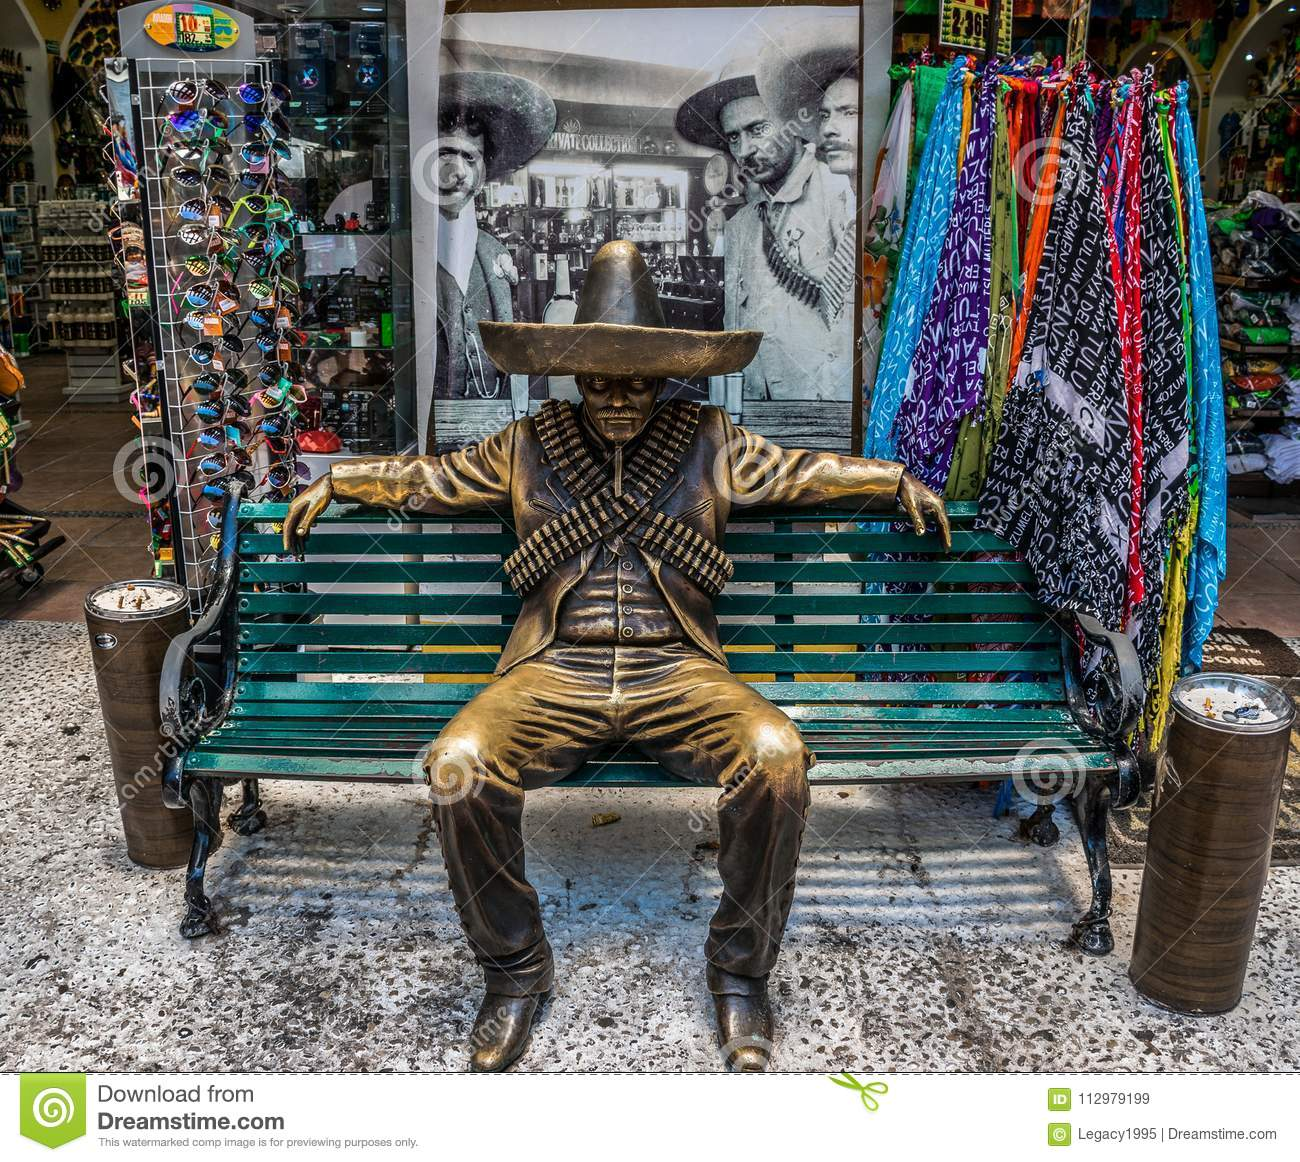 5th Avenue Mexican Gunslinger Statue in Front of Hacienda Tequila in Playa Del Carmen, Mexico